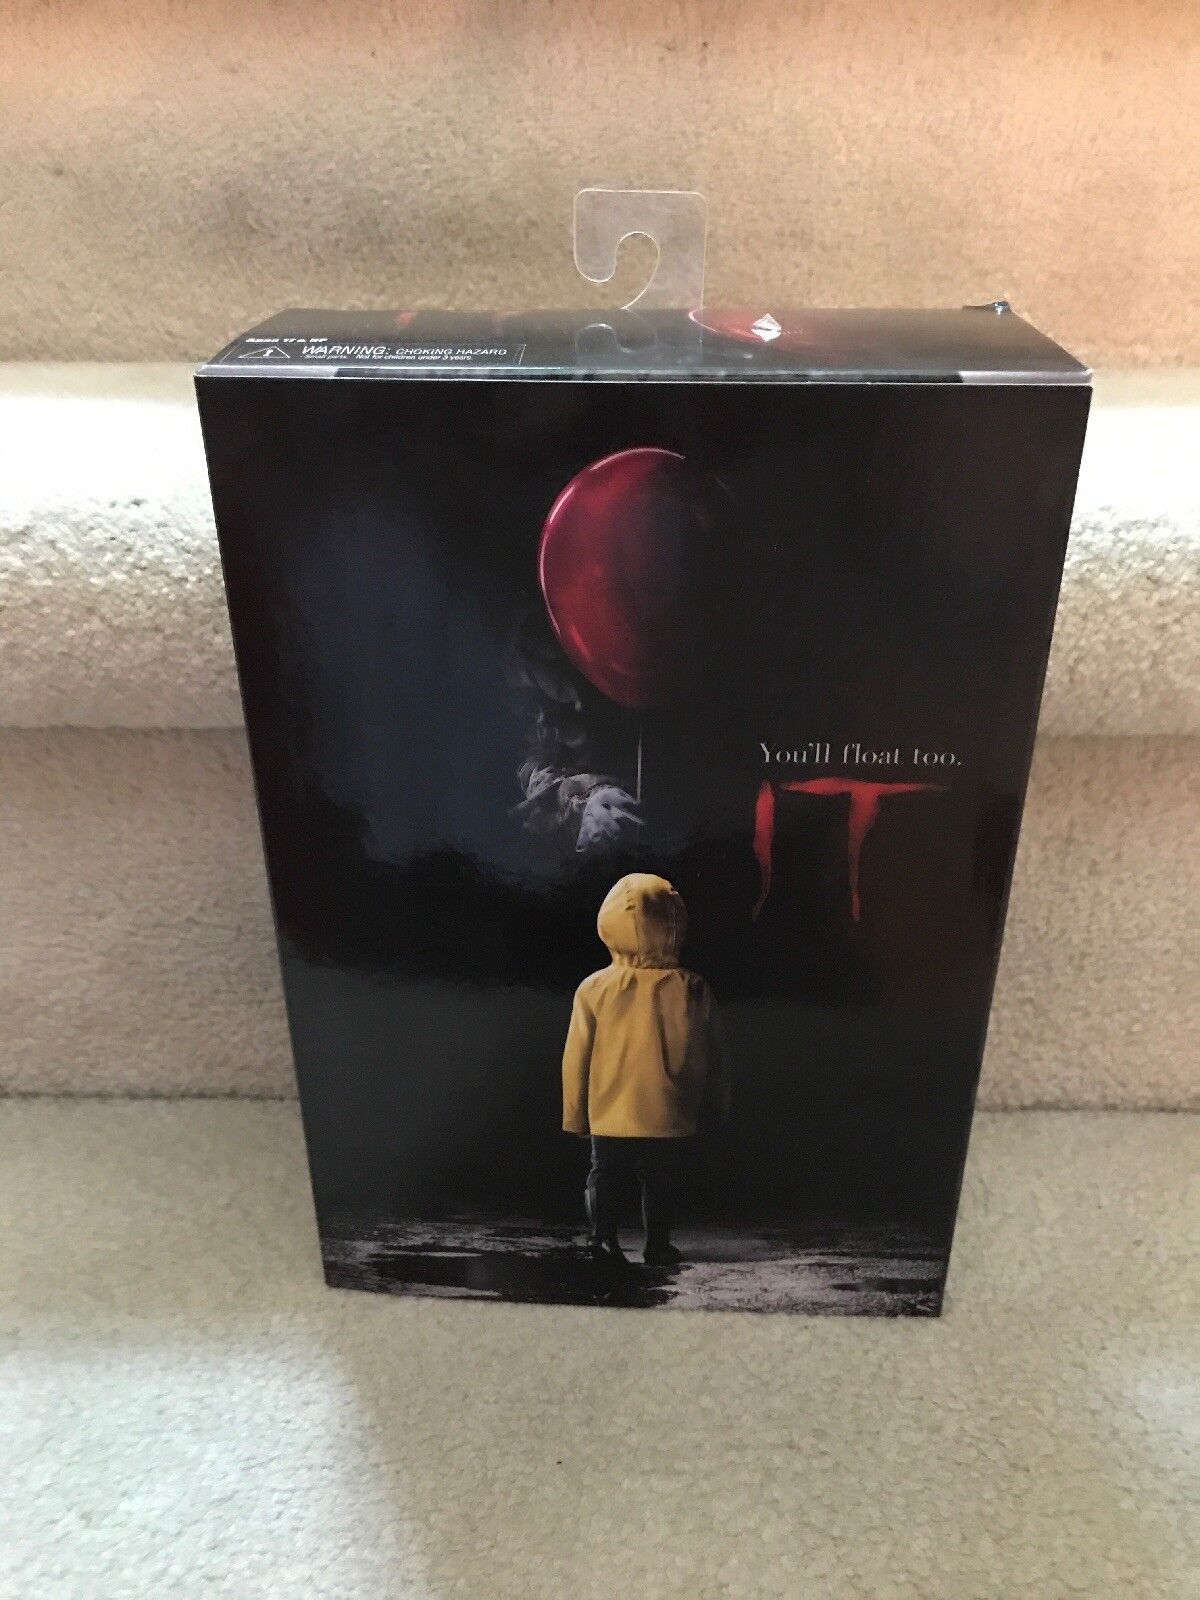 IT Pennywise 2017 Film Ultimate 7